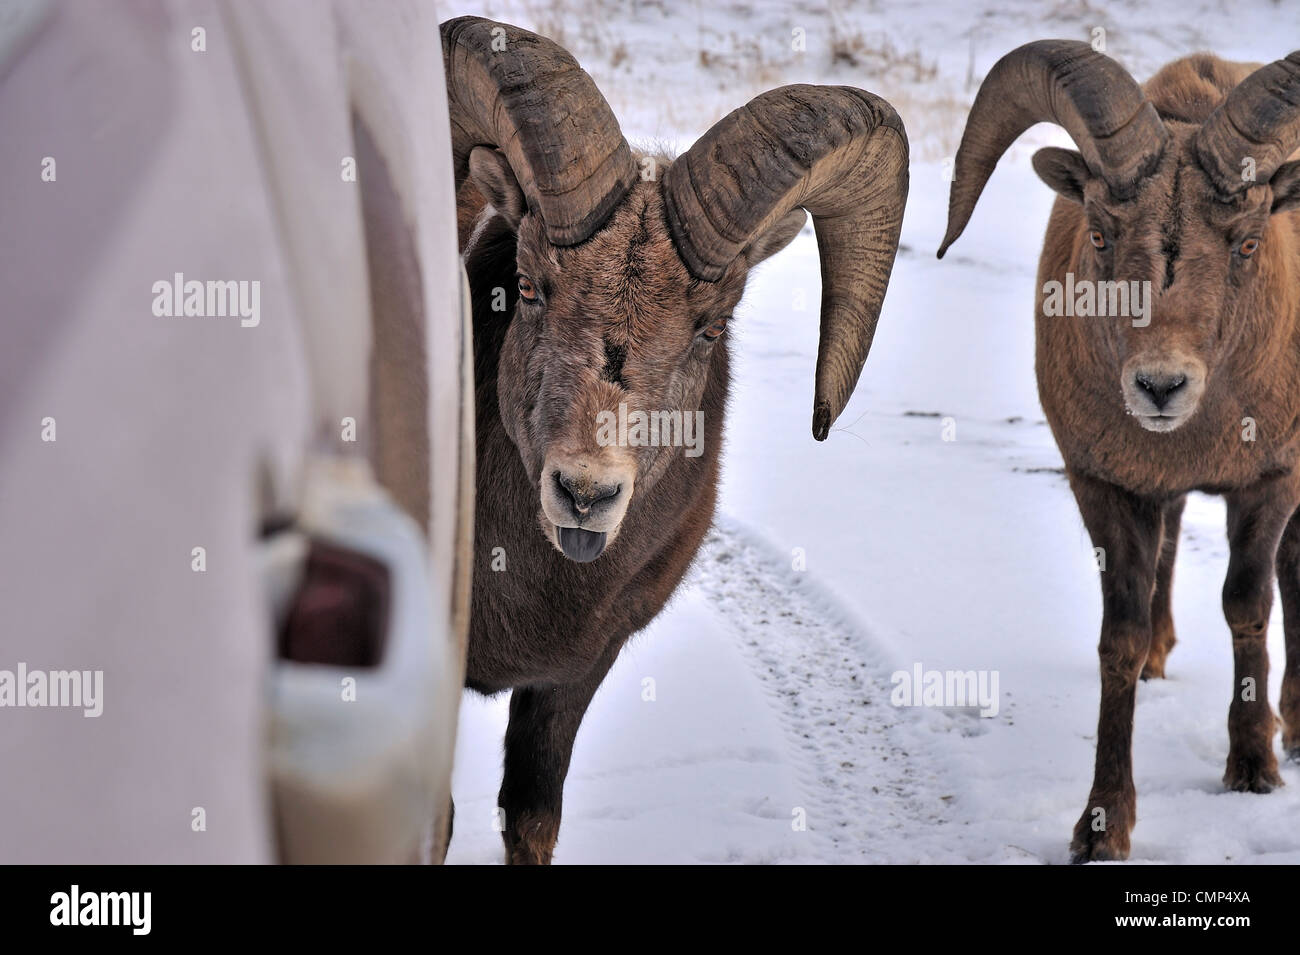 A bighorn ram licking road salt from the surface of a pick up truck. - Stock Image